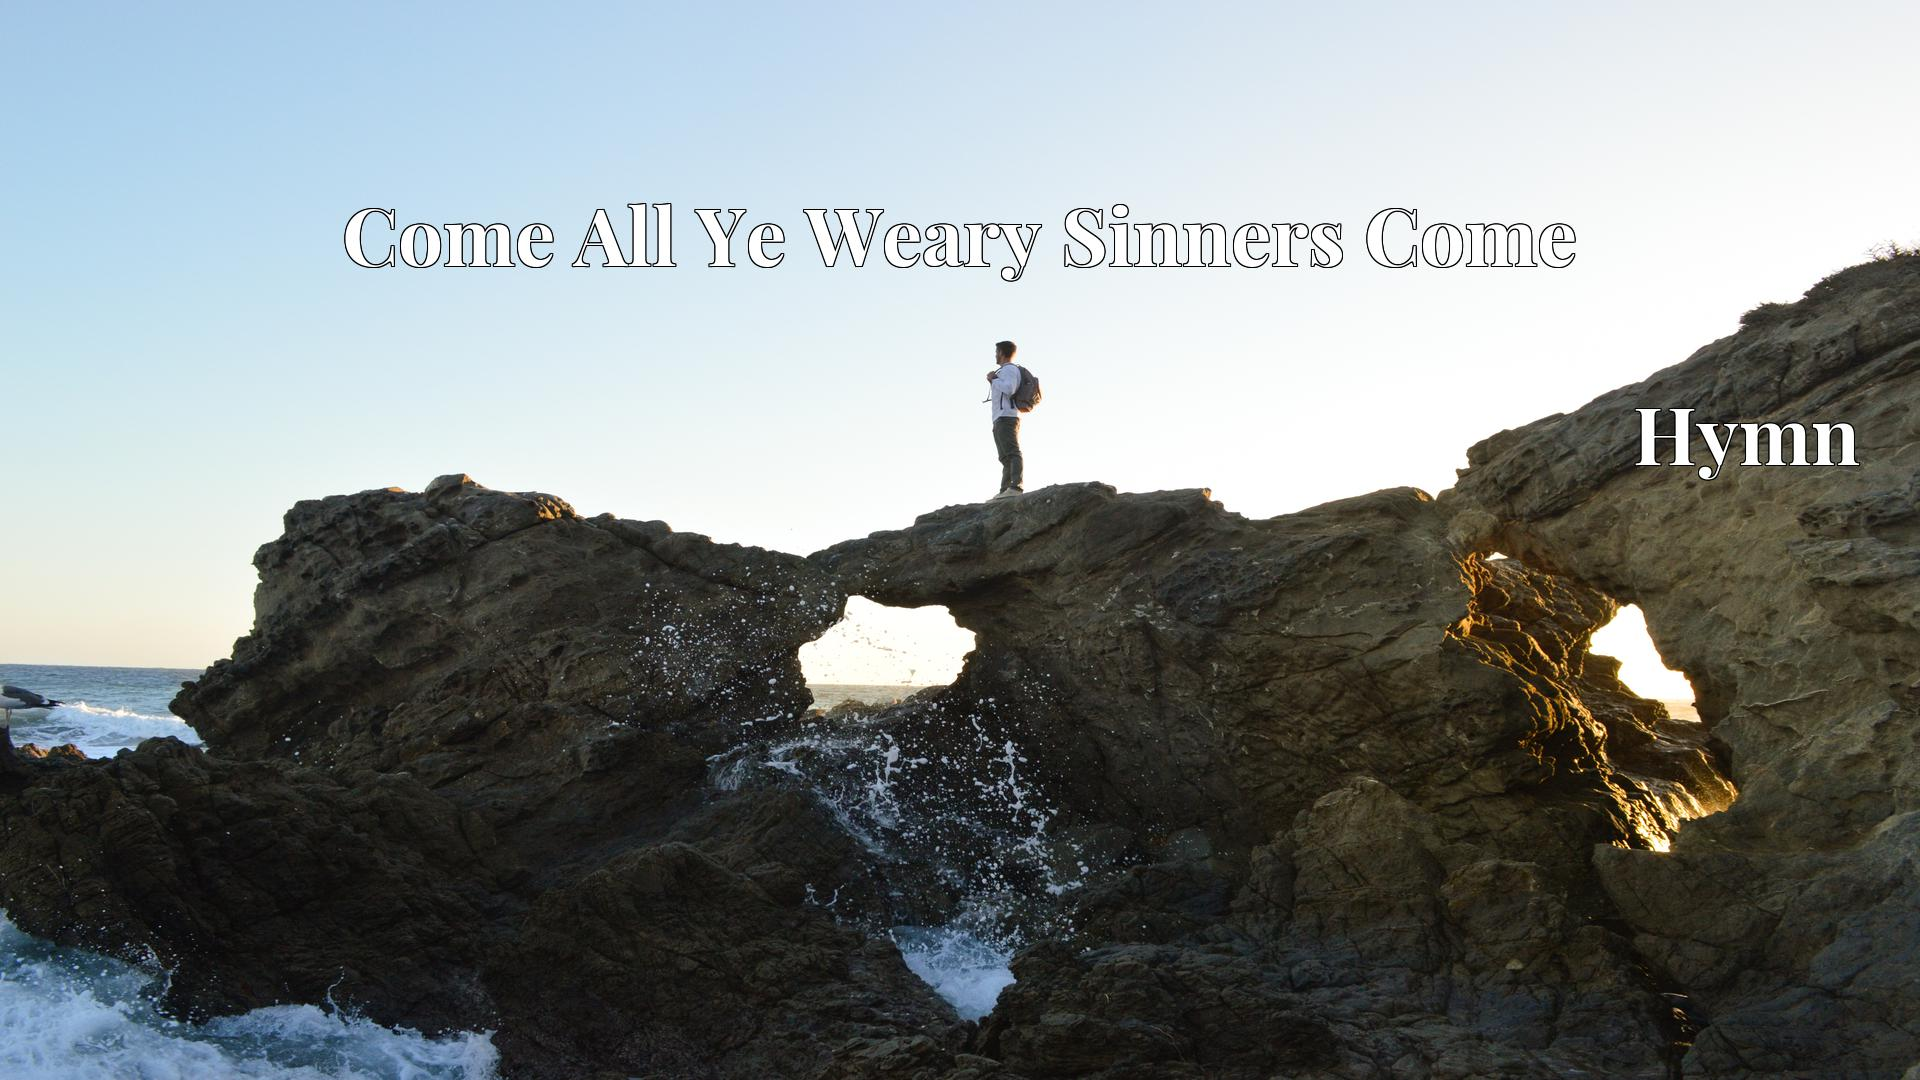 Come All Ye Weary Sinners Come - Hymn